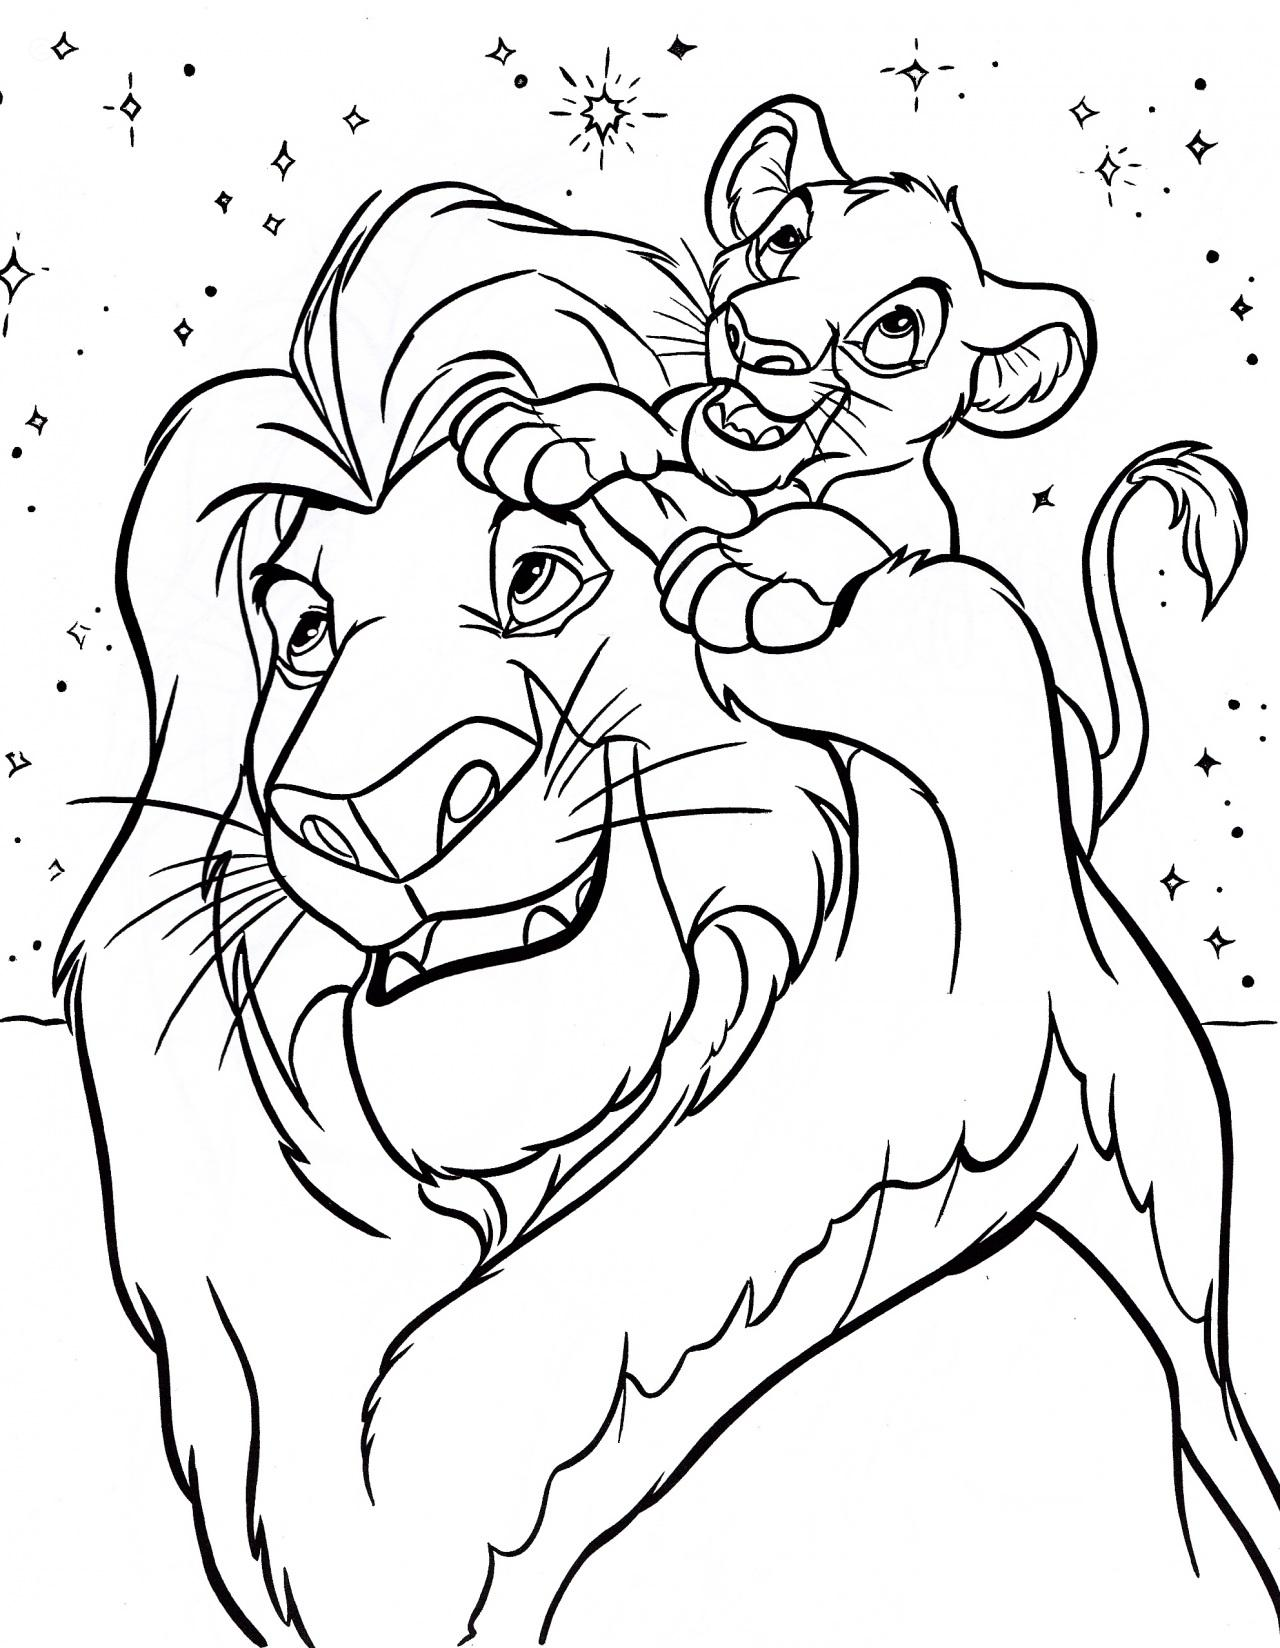 free coloring pages of lions - photo#6